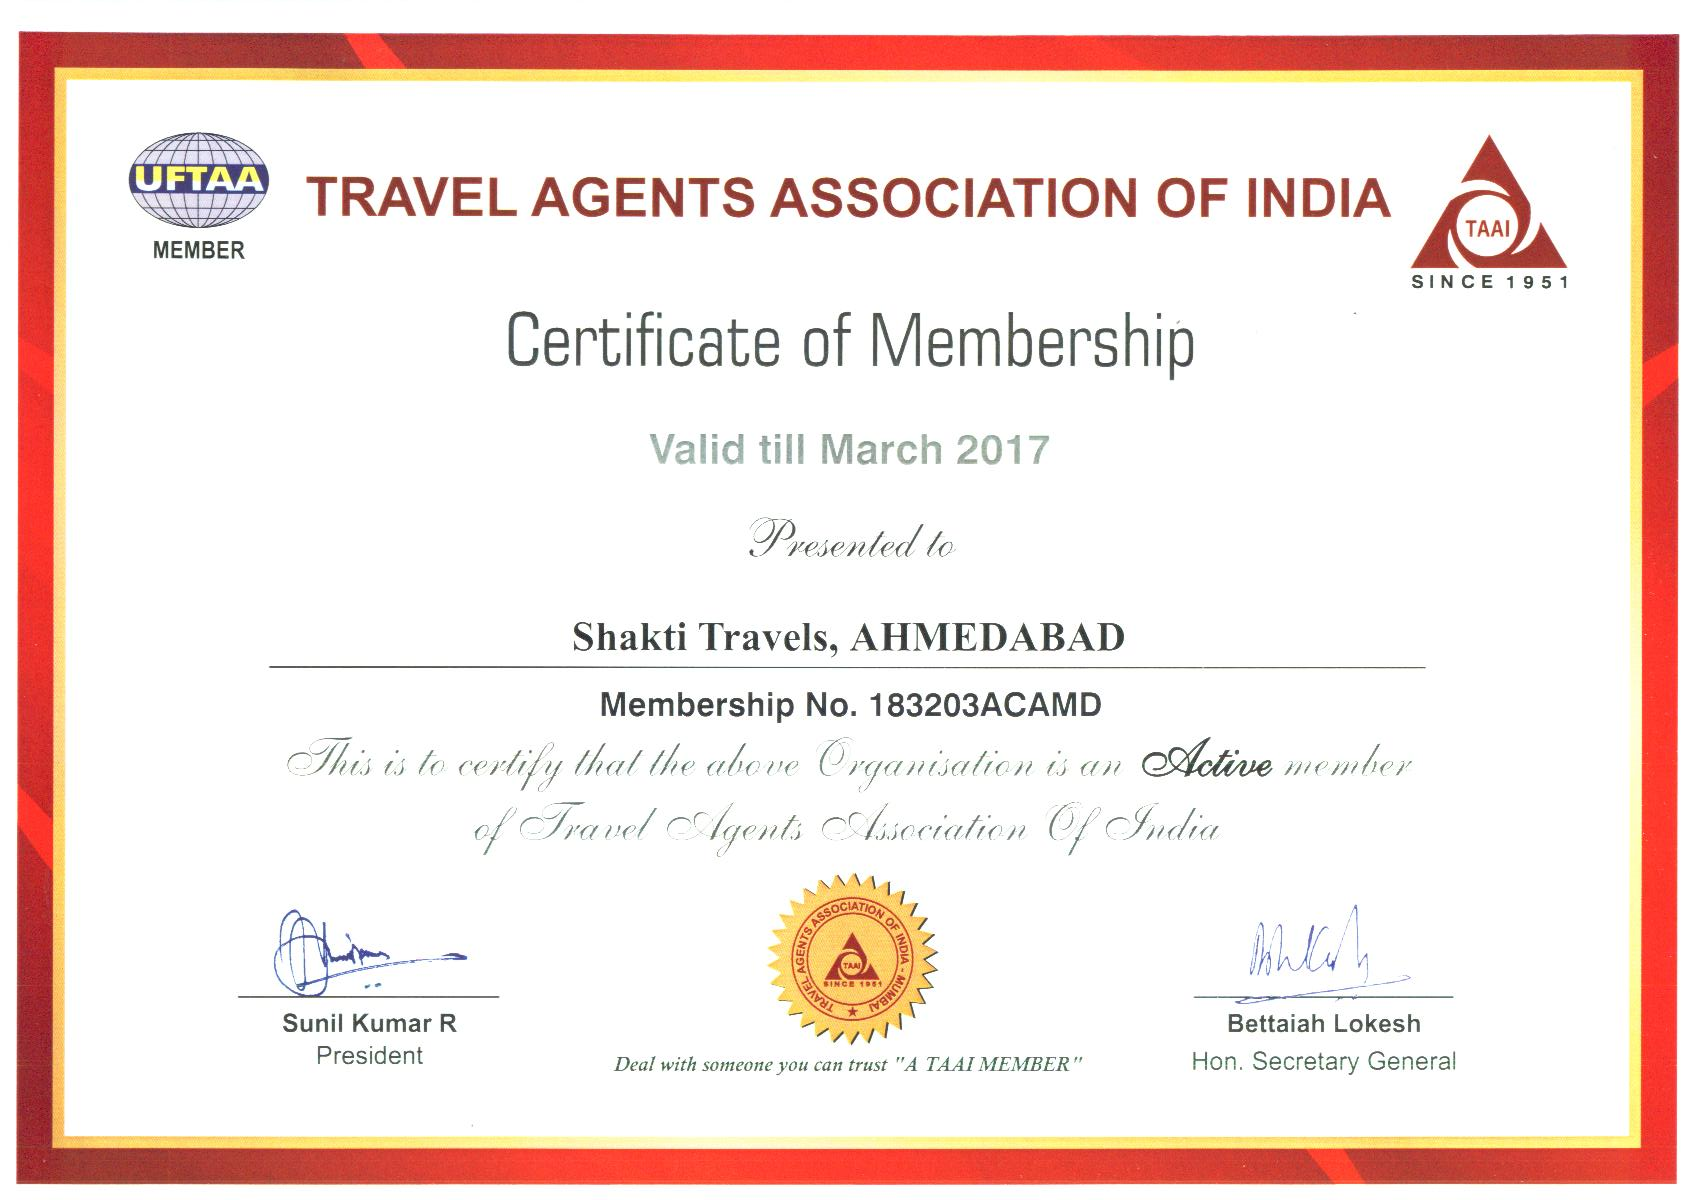 Travel Agents Association of India